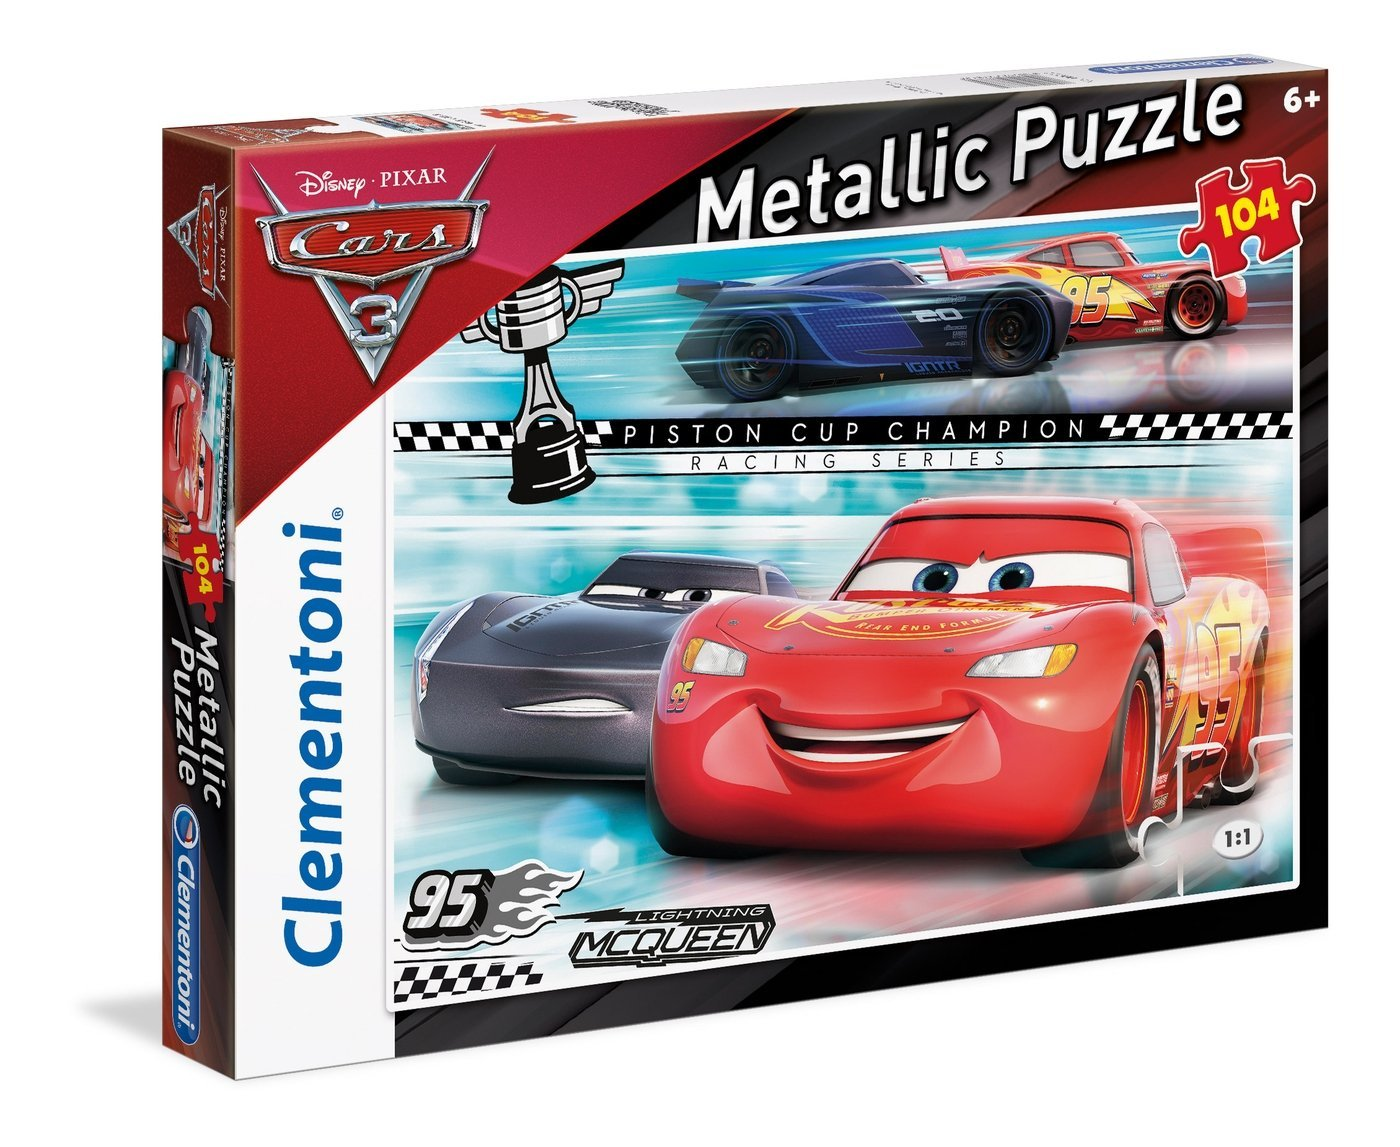 Metallic Puzzle - Cars 3